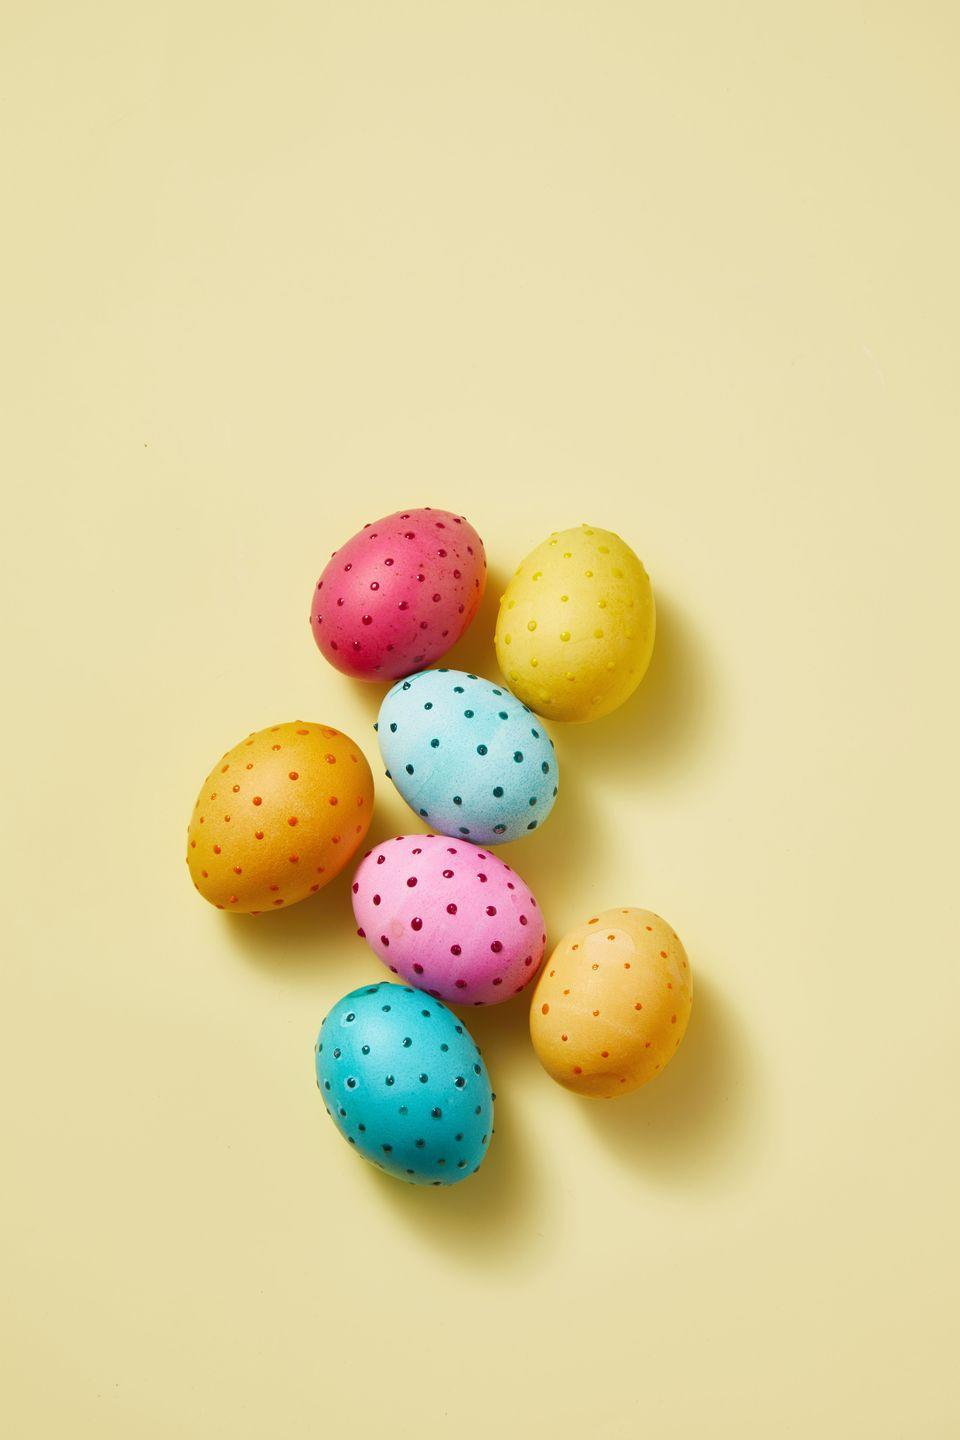 """<p>These eggs are a must for this year's hunt! Pro-tip: For colors that pop, mix one teaspoon of vinegar per one cup of warm water, adding 10 to 20 drops of gel dye. </p><p><a class=""""link rapid-noclick-resp"""" href=""""https://www.amazon.com/Food-Coloring-AmeriColor-Student-Bottles/dp/B01E0HBUSE?tag=syn-yahoo-20&ascsubtag=%5Bartid%7C10055.g.2217%5Bsrc%7Cyahoo-us"""" rel=""""nofollow noopener"""" target=""""_blank"""" data-ylk=""""slk:BUY EGG DYEING KIT"""">BUY EGG DYEING KIT</a> </p>"""